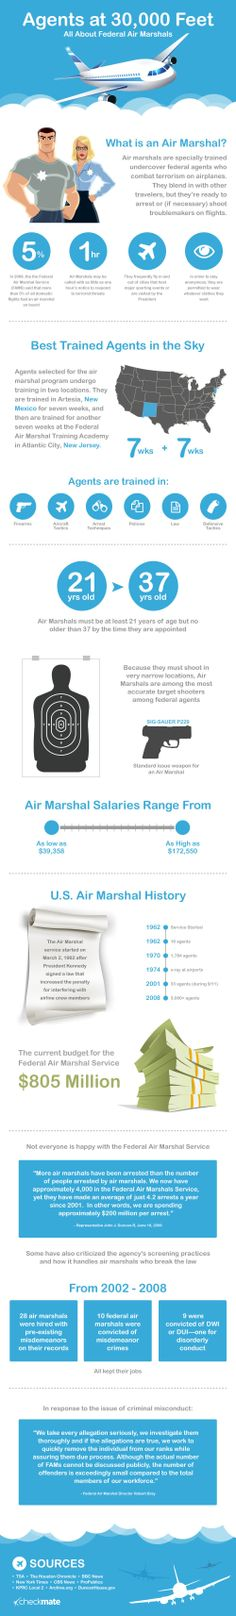 INTERESTED IN BEING AN AIR MARSHAL? Everything you should know about air marshals on flights and the history of the federal program. http://mashable.com/2014/05/02/federal-air-marshal-program/?utm_campaign=Mash-Prod-RSS-Feedburner-All-Partial&utm_cid=Mash-Prod-RSS-Feedburner-All-Partial&utm_medium=feed&utm_source=feedly&utm_reader=feedly